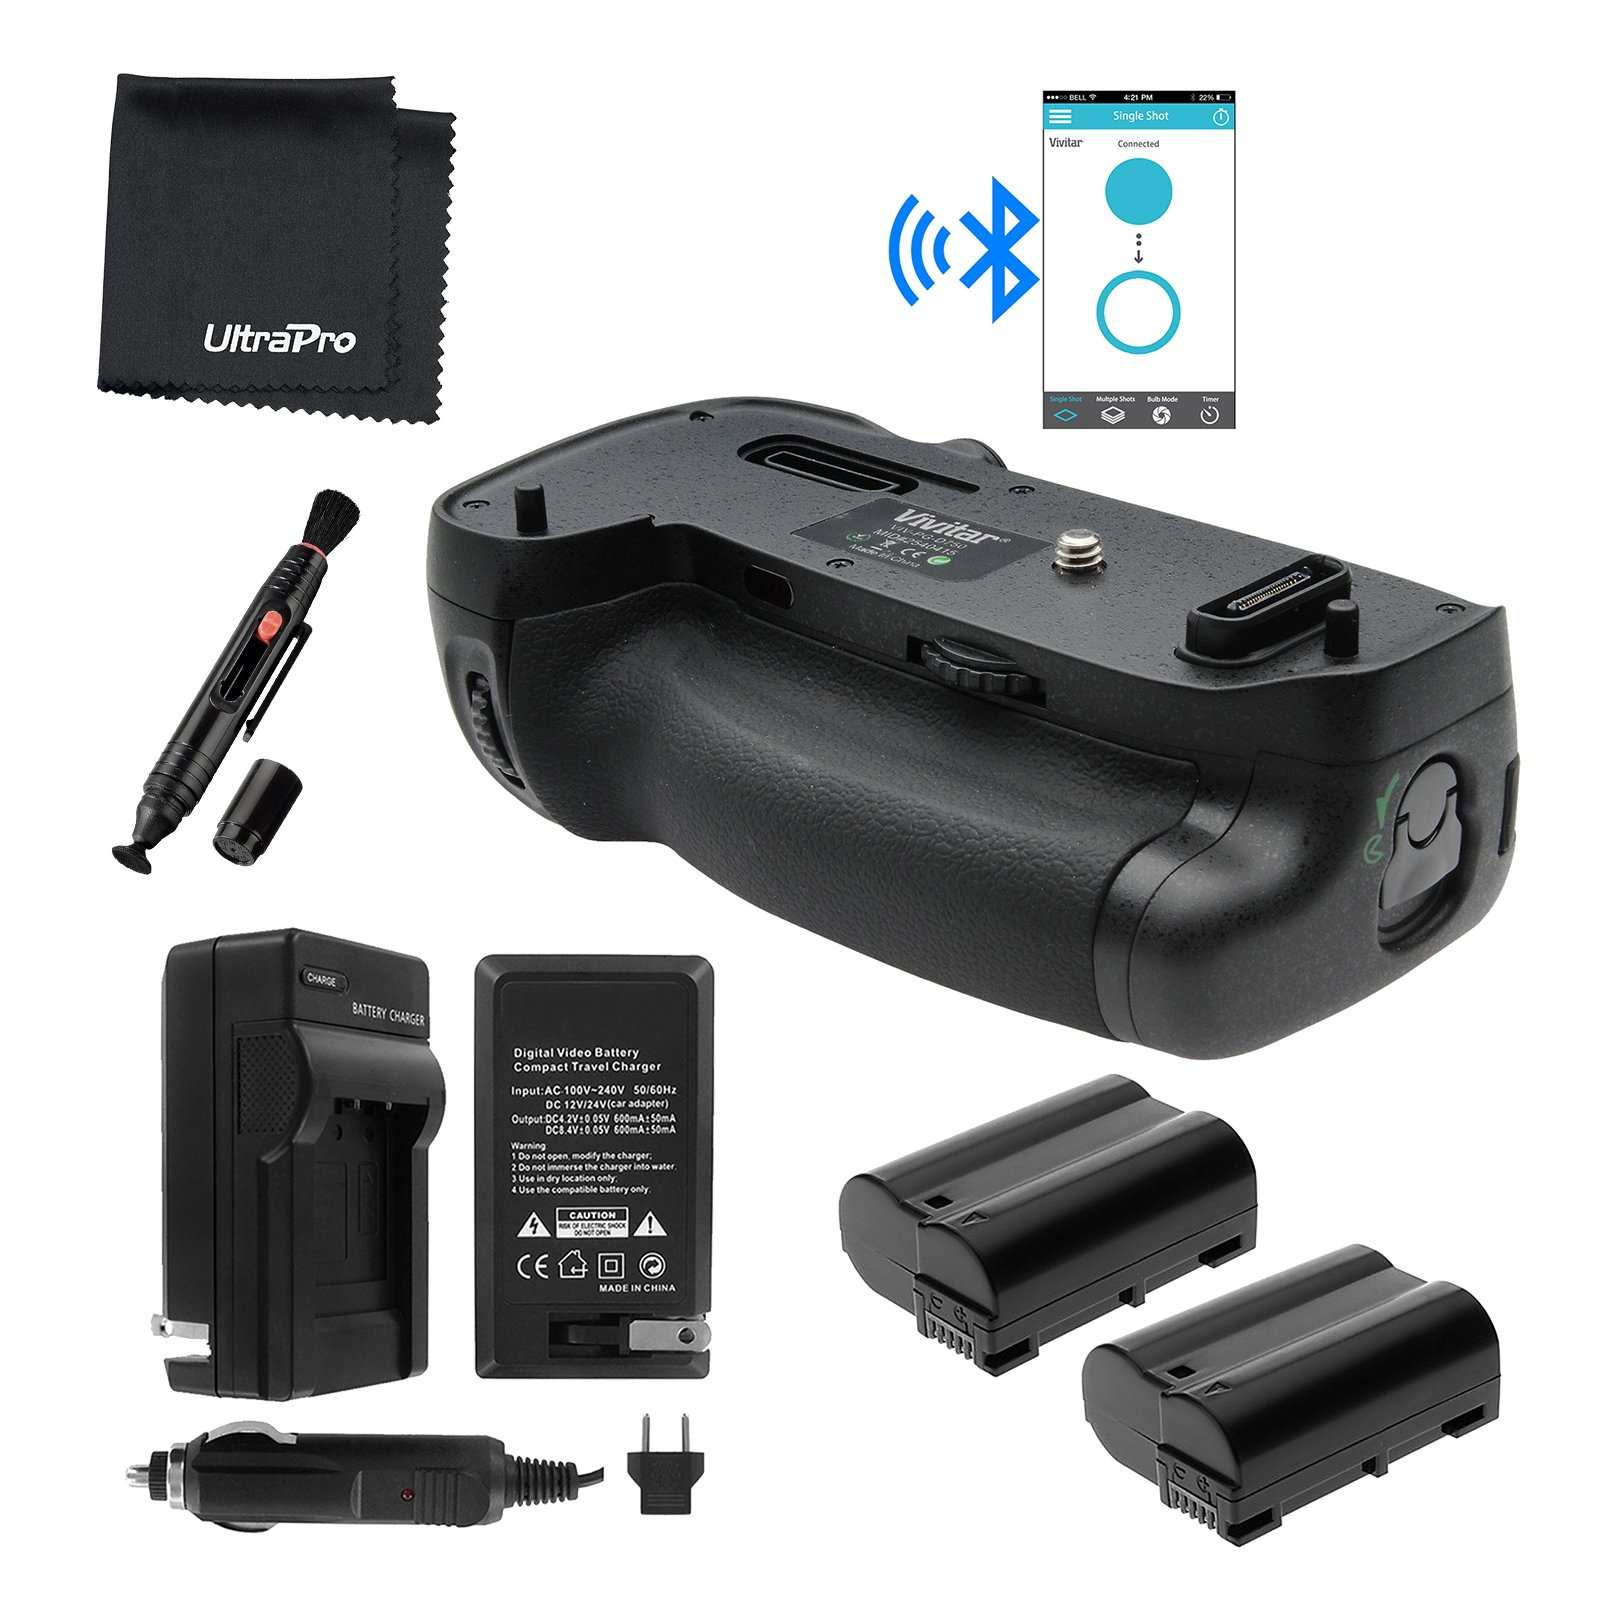 Bluetooth Battery Grip Bundle F/ Nikon D750 Camera - UltraPro Bundle Includes: Vertical Battery Replacement Grip for MB-D16, 2-Pk EN-EL15 Replacement Long-Life Batteries, Charger and More by UltraPro